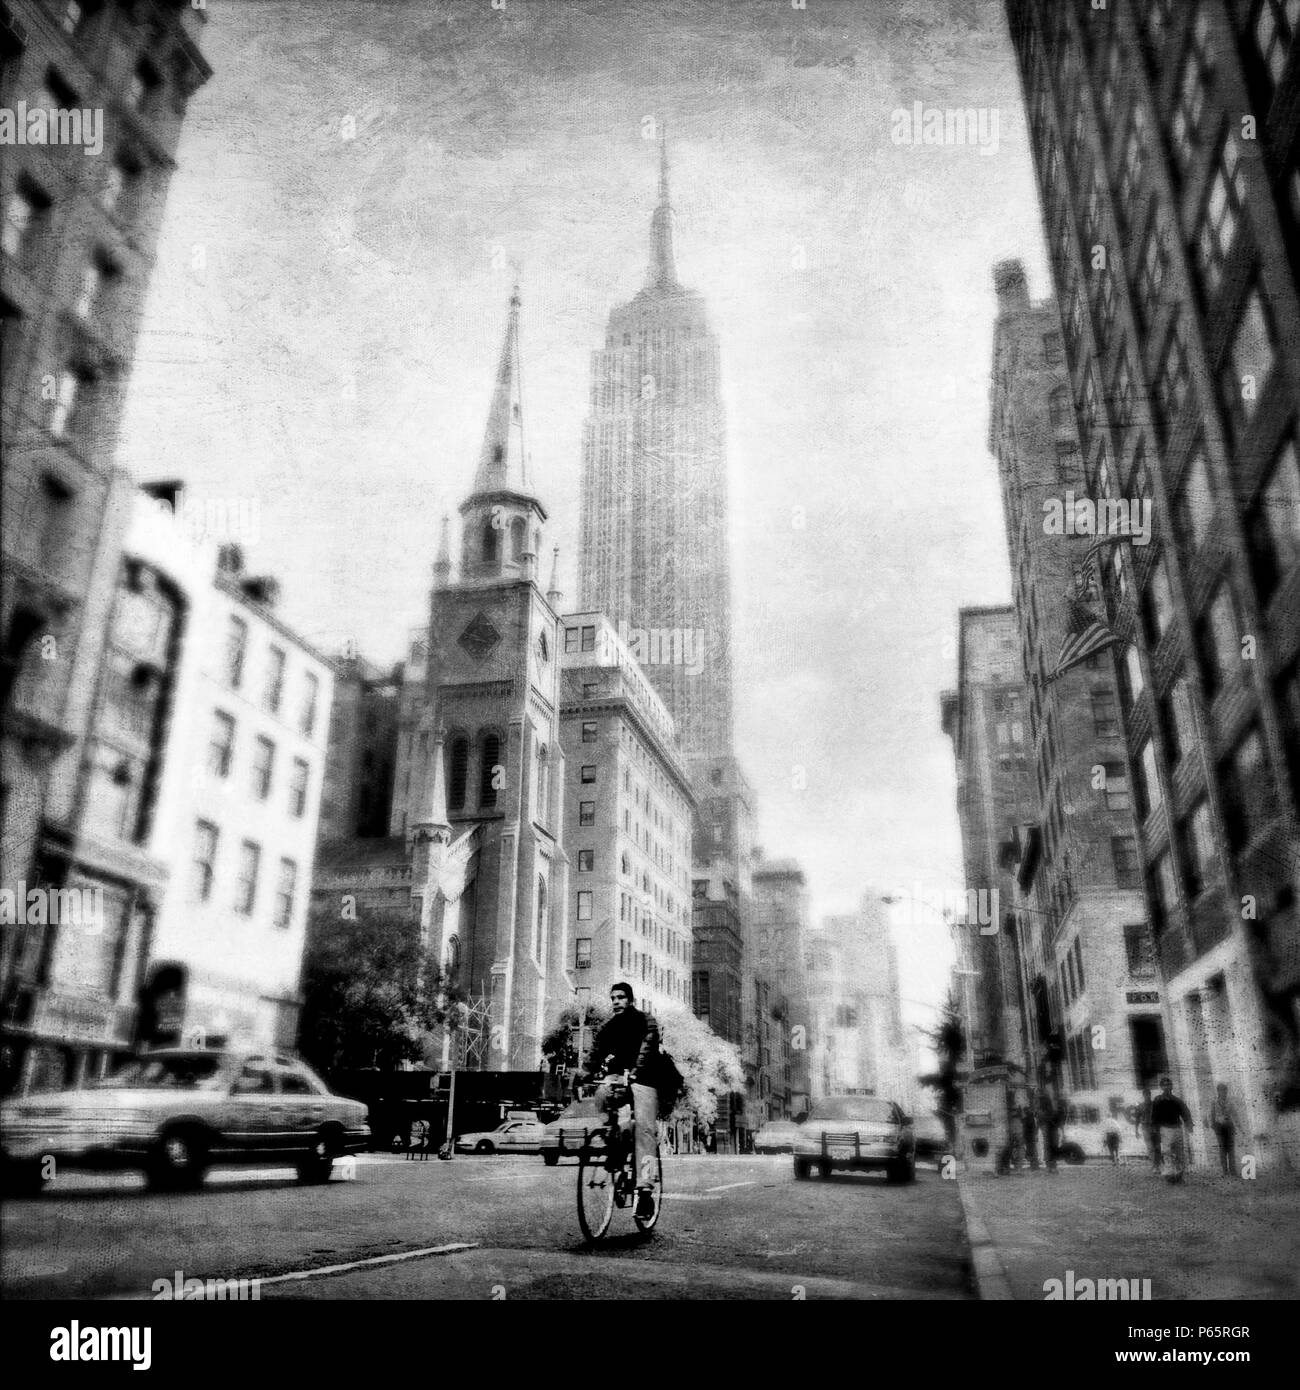 Bicyclist and Manhattan Skyline with Empire State Building, New York City, New York, USA - Stock Image